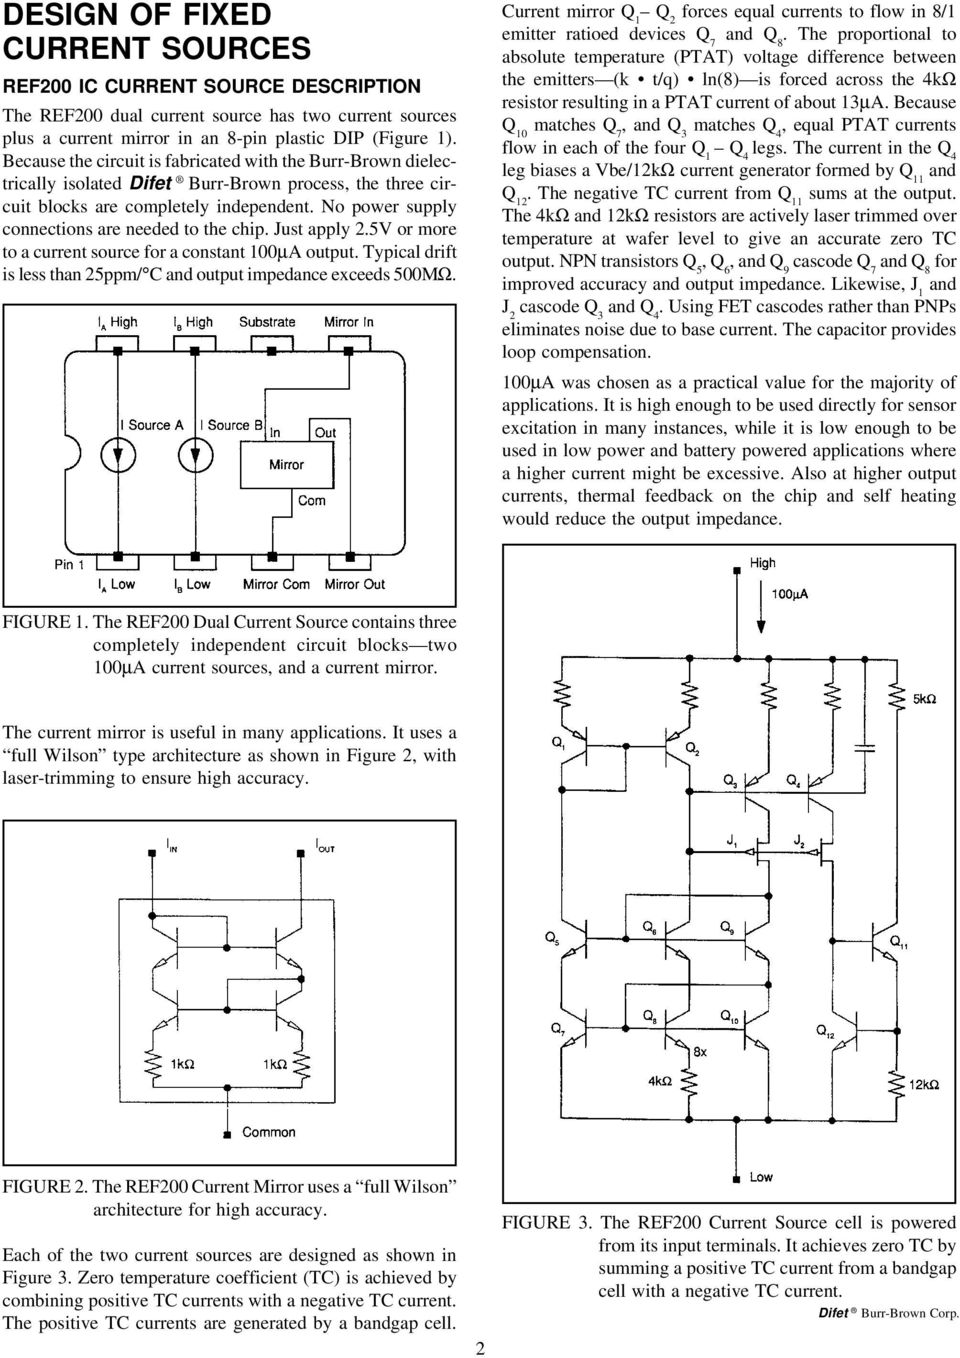 Design Of Fixed Current Sources Pdf Figure 3 Transimpedance Circuit Converting A Photodiode Into No Power Supply Connections Are Needed To The Chip Just Apply 25v Or More